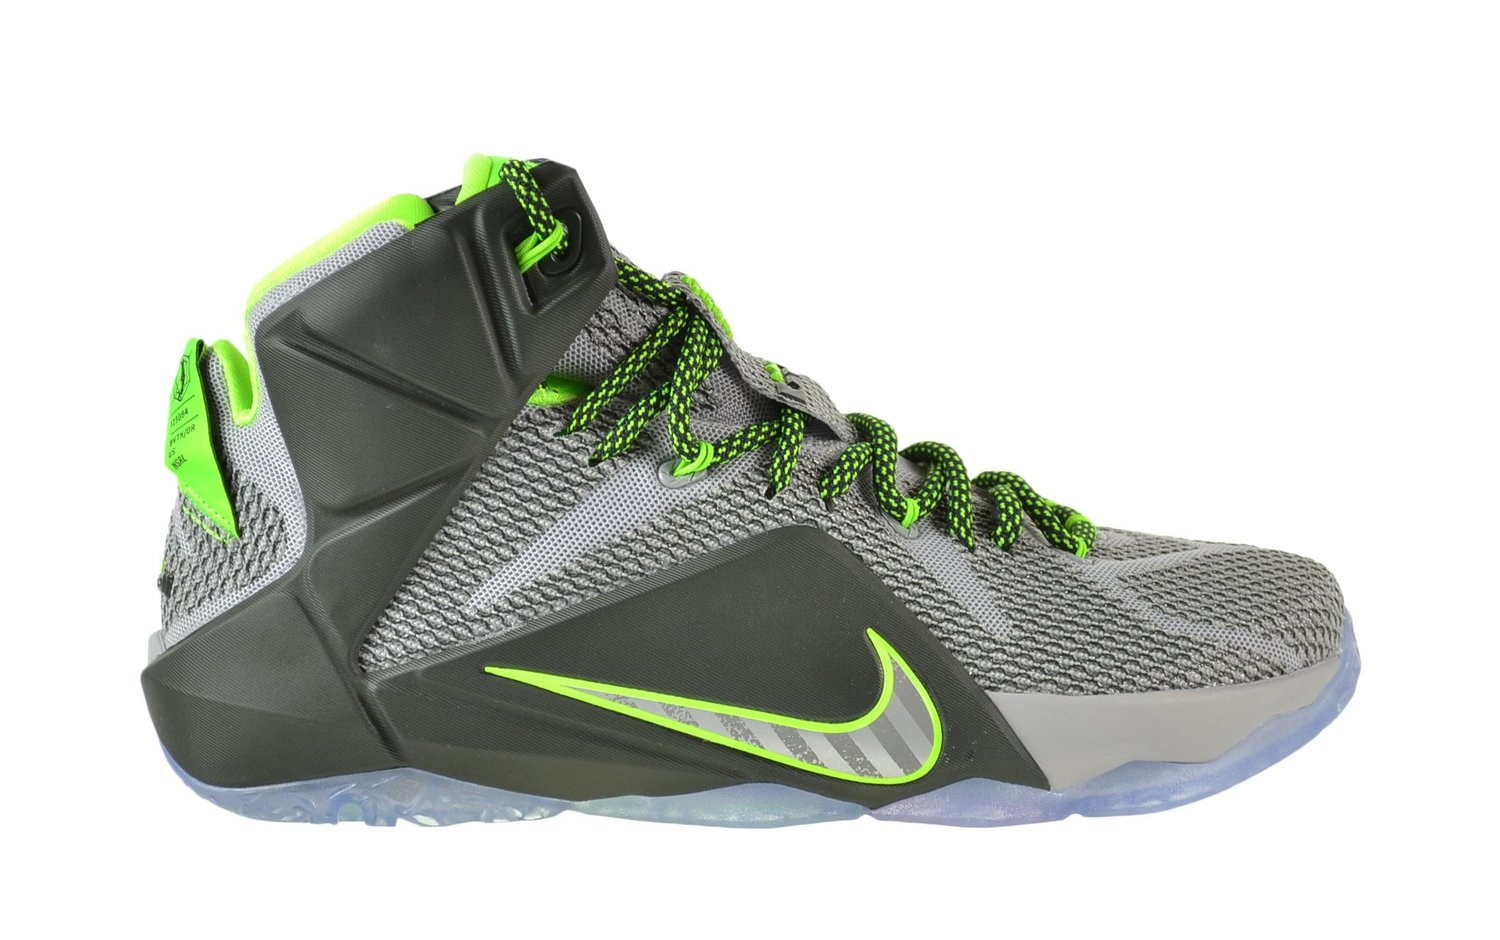 low cost 7d41a 7bbfc Get Quotations · Nike Lebron XII